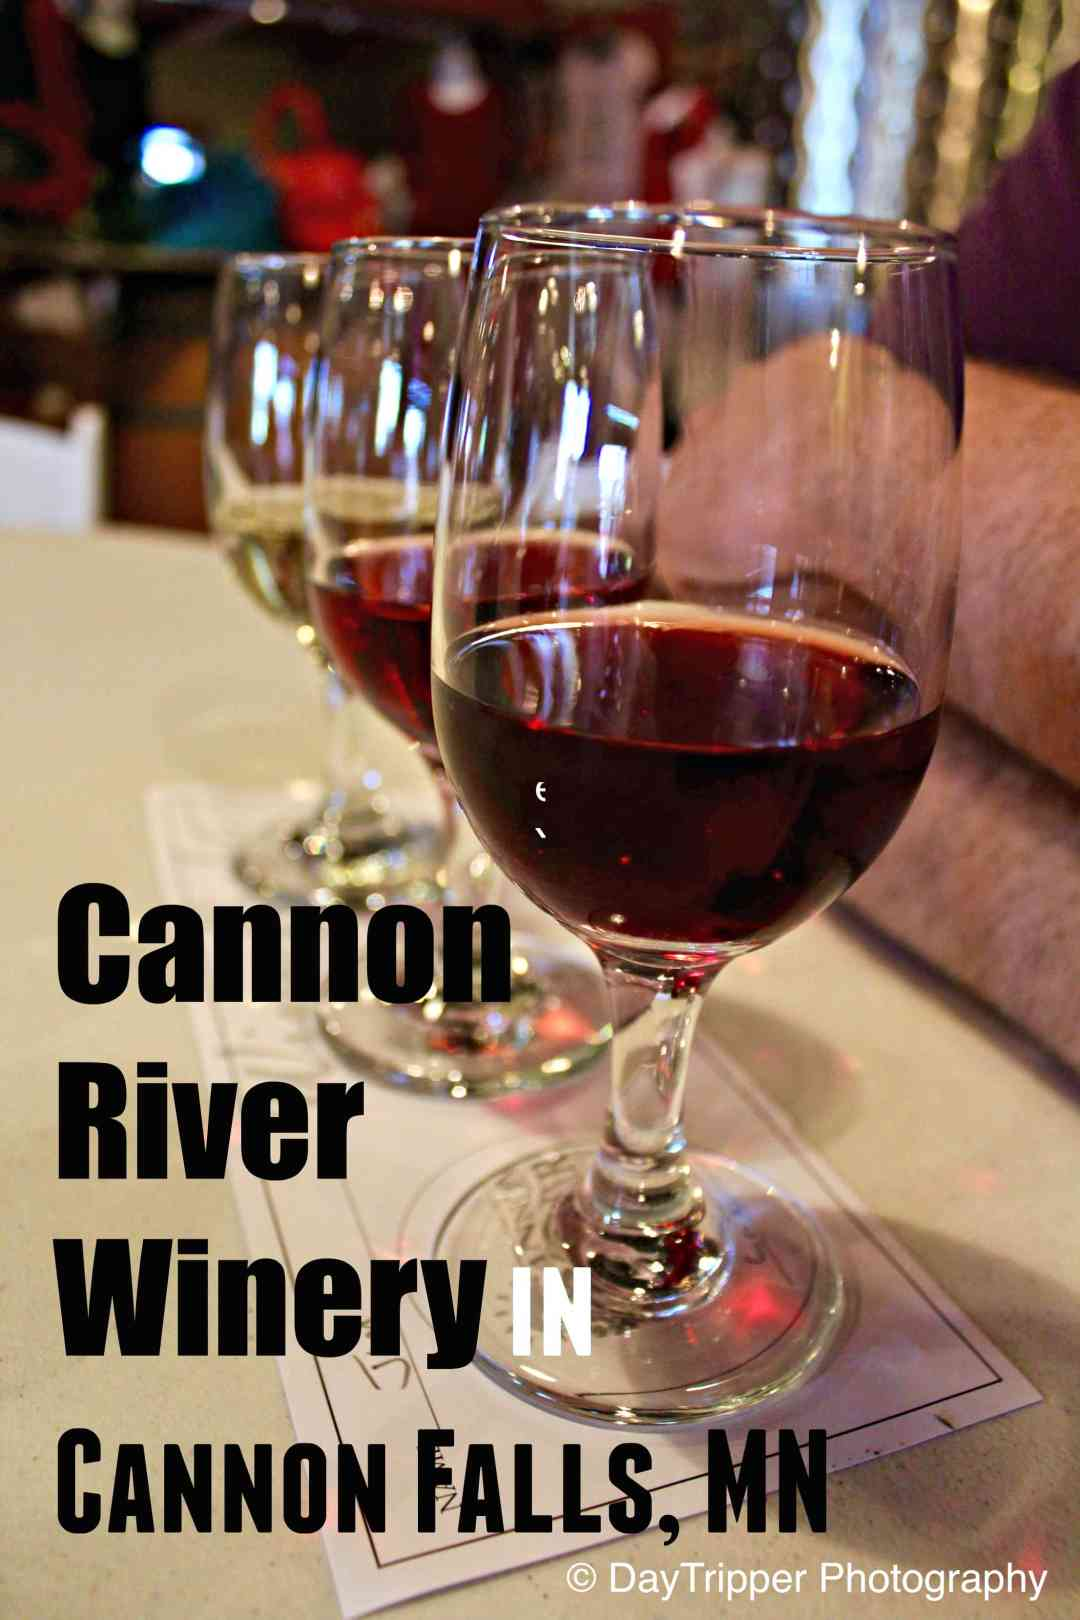 Have you ever done a wine flight? They have them at Cannon River Winery in Cannon Falls